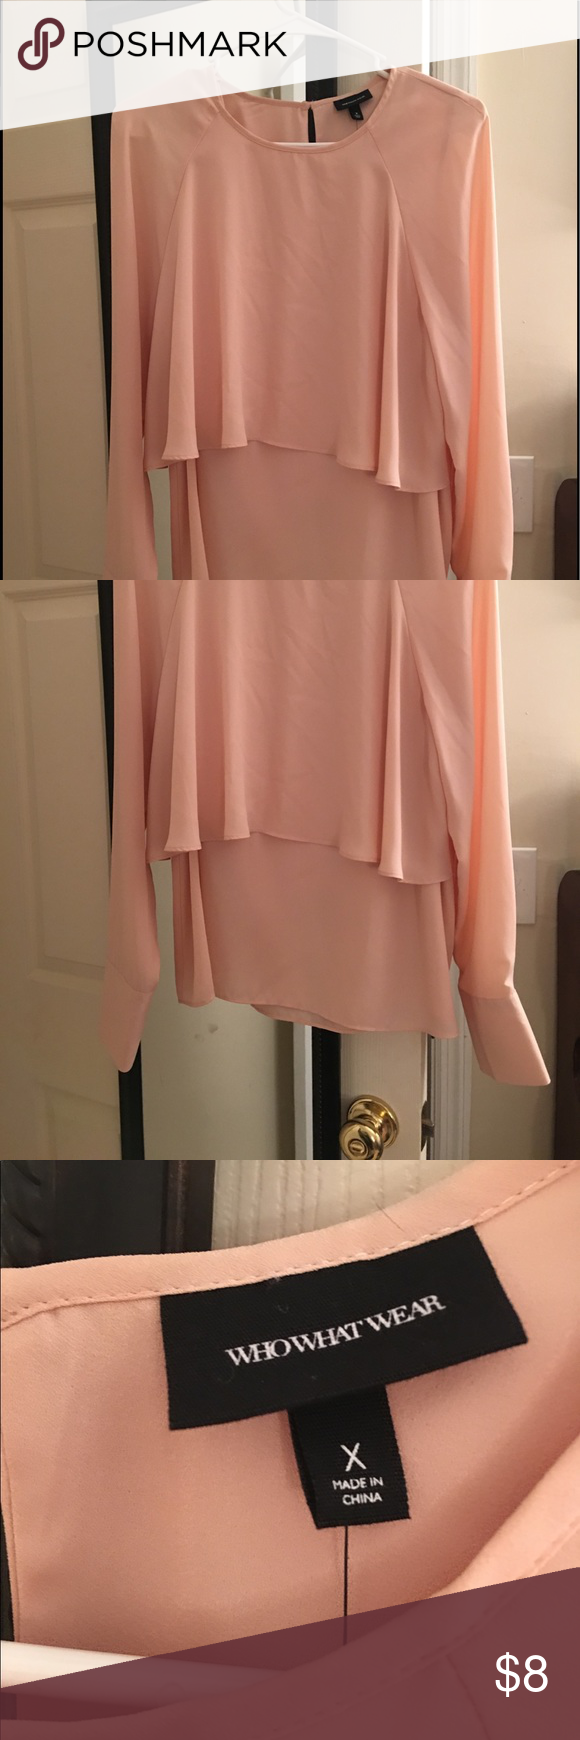 WhoWhatWear blouse NWOT!!! never before worn, only tried on once size large blouse. Perfect for work! Tops Blouses